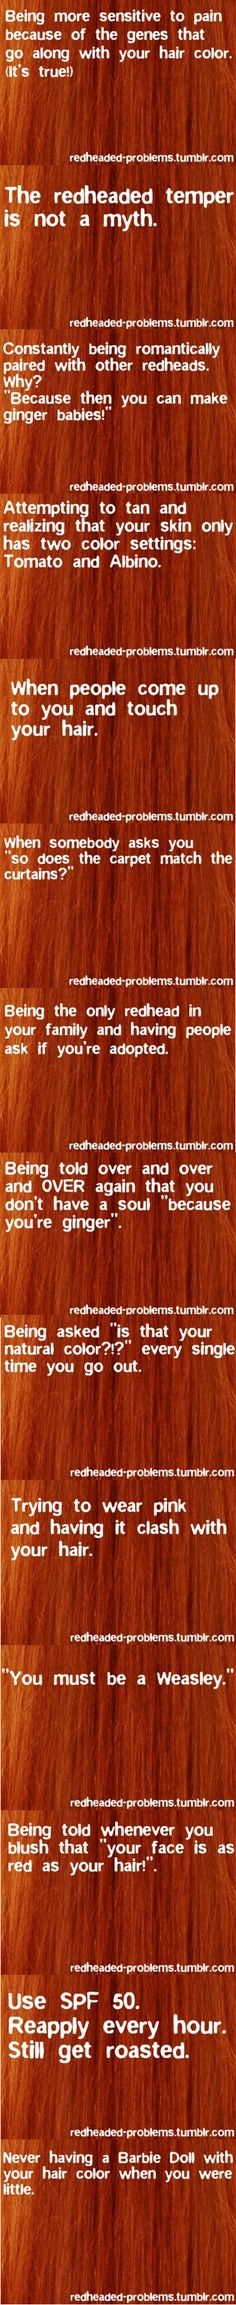 Redheaded Problems--Compilation!